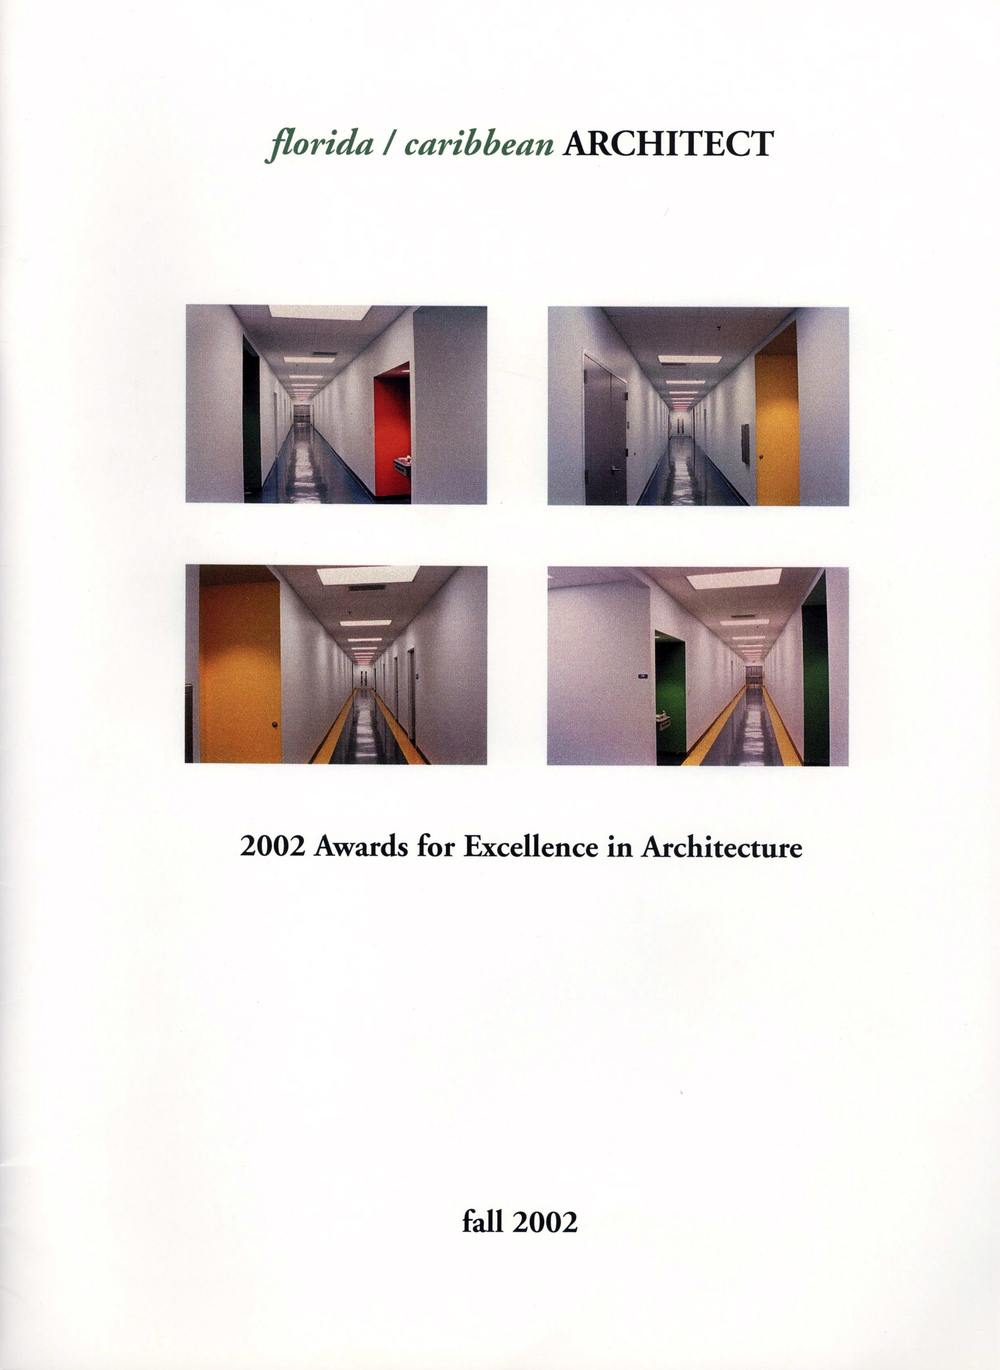 Florida Architect 2002 (Publications) 001 SC-10.jpg